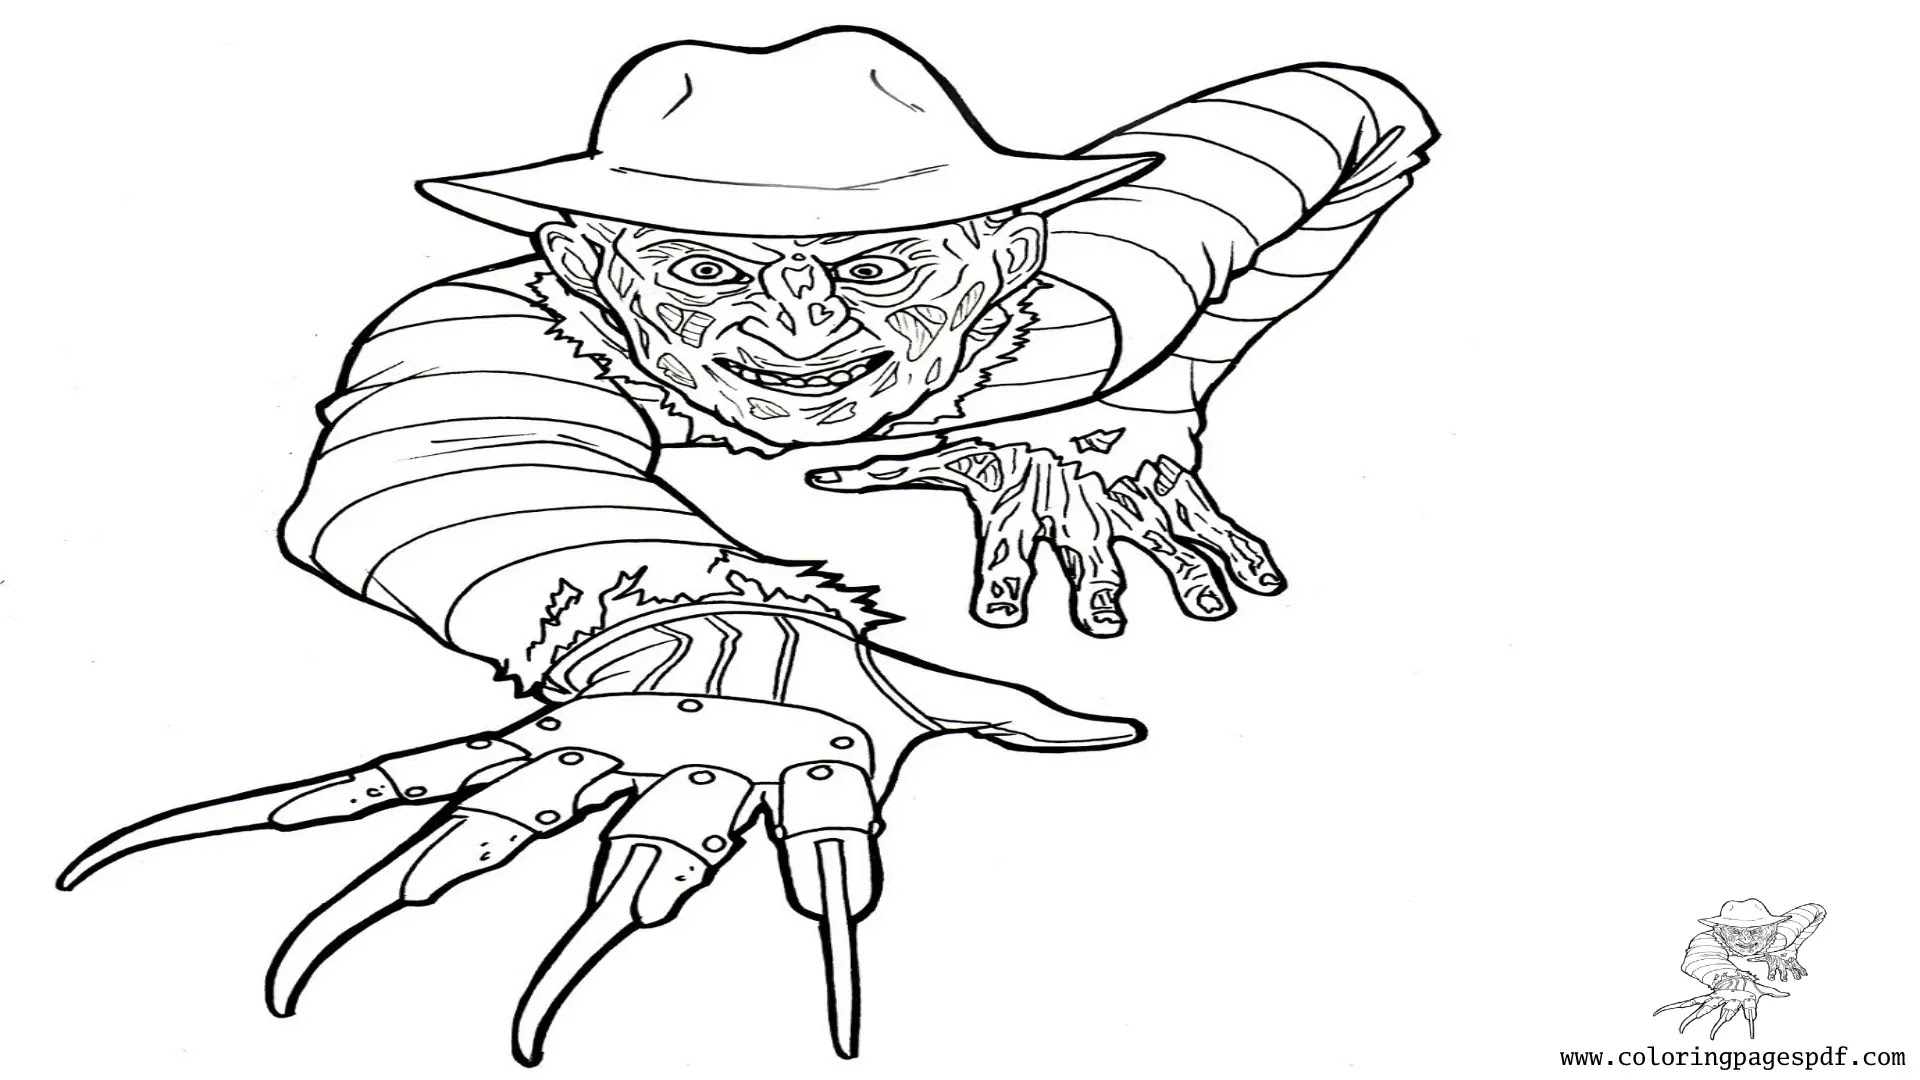 Coloring Page Of Freddy Krueger